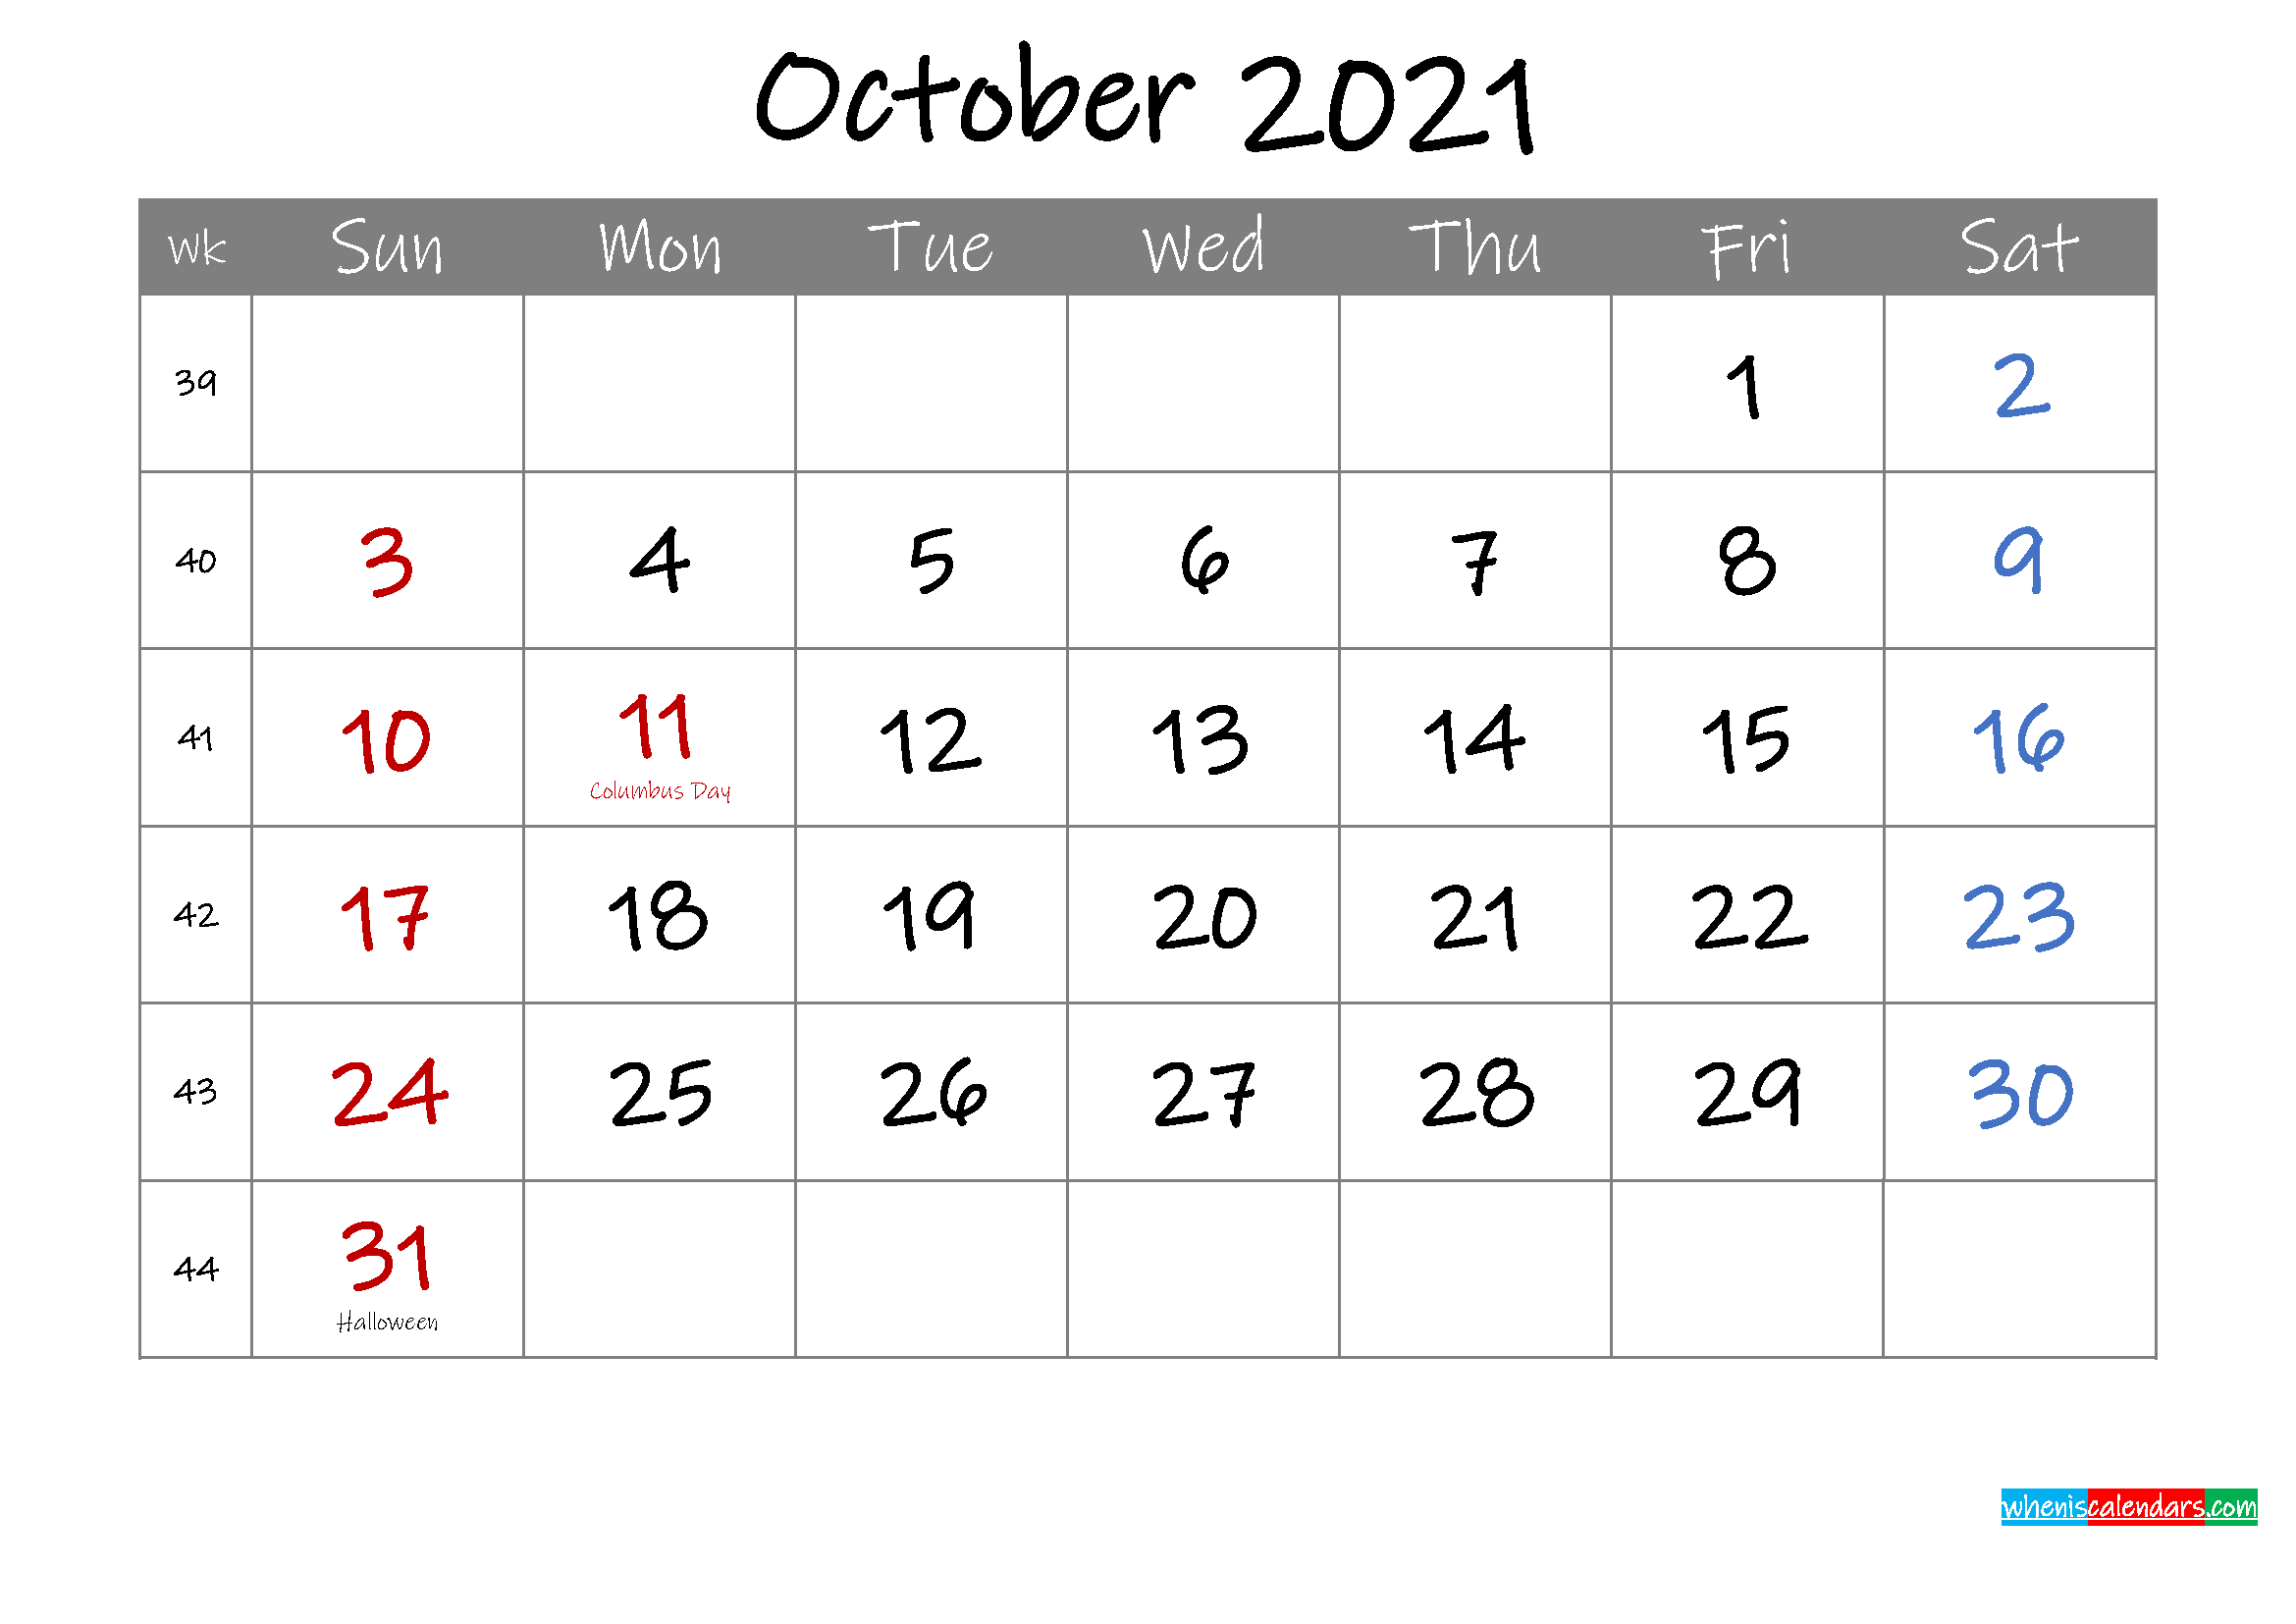 Editable October 2021 Calendar with Holidays